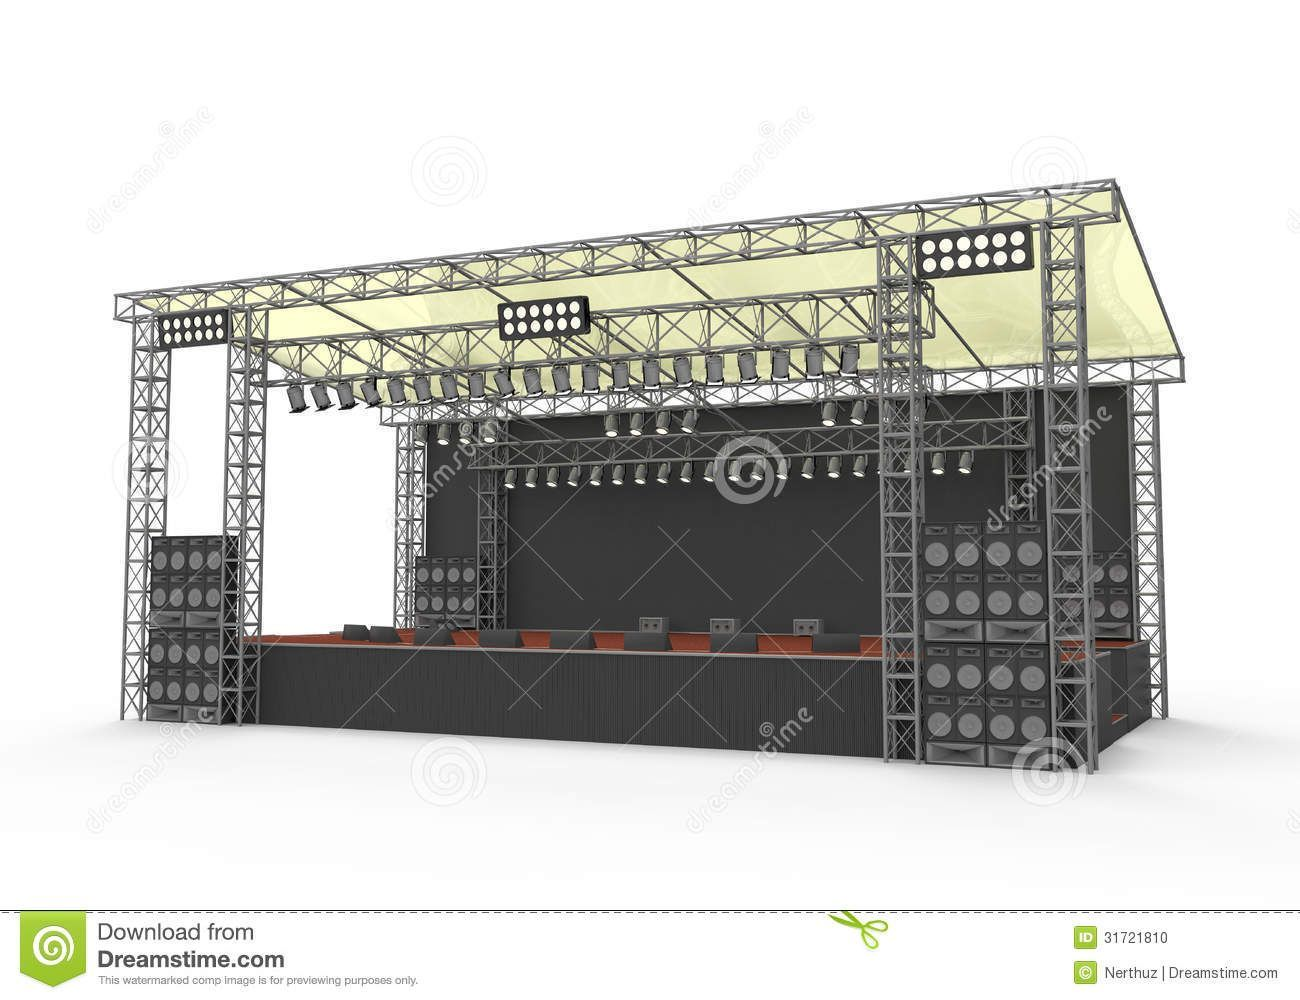 A stage was set up and it looked AWESOME!